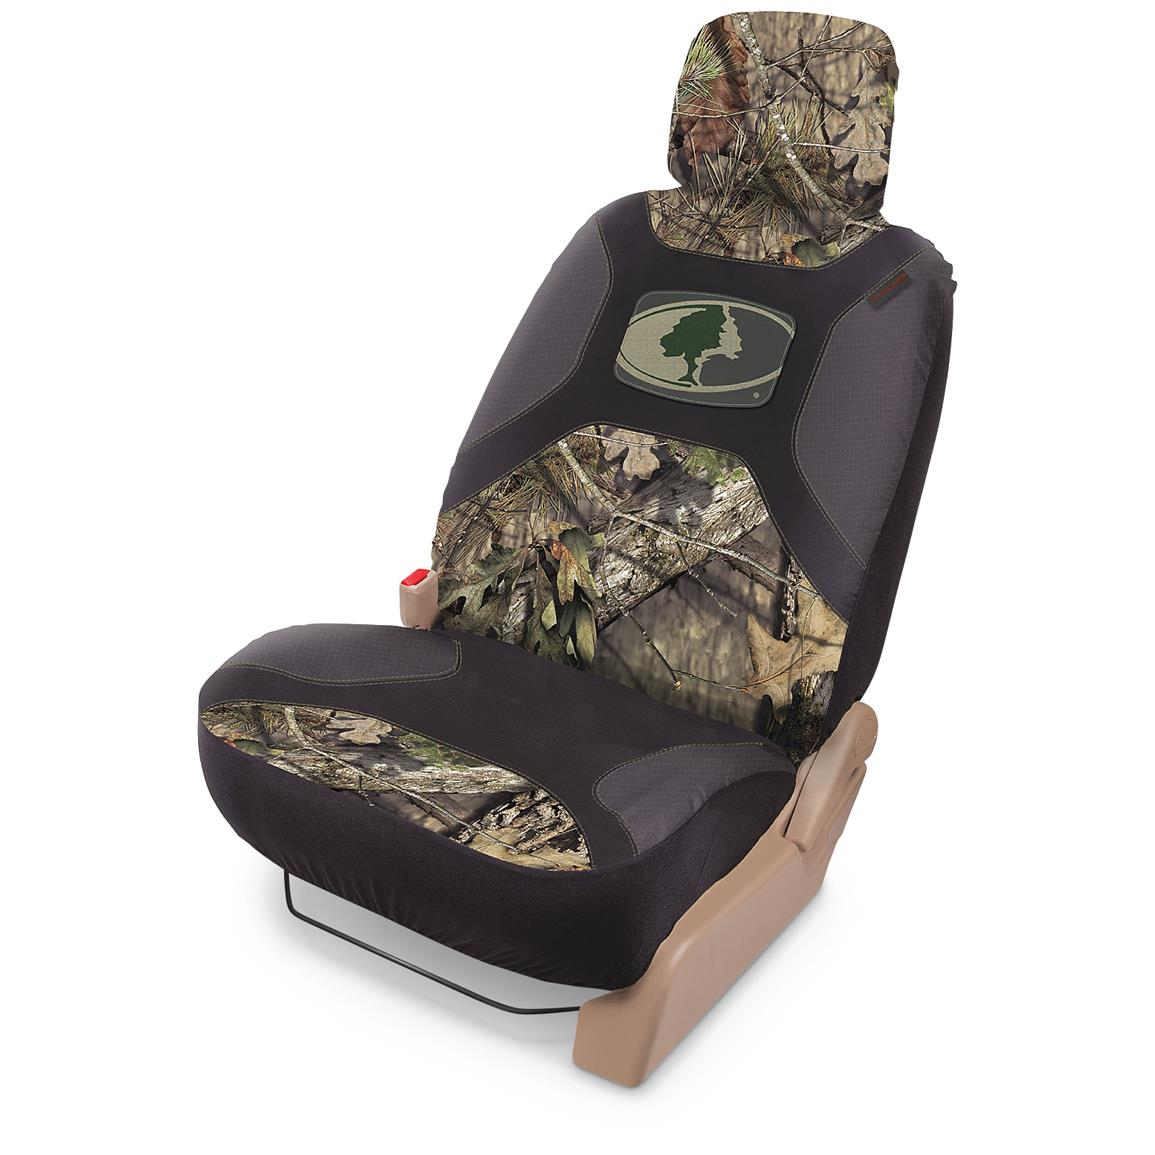 Universal Low-back Camo Seat Cover, Mossy Oak